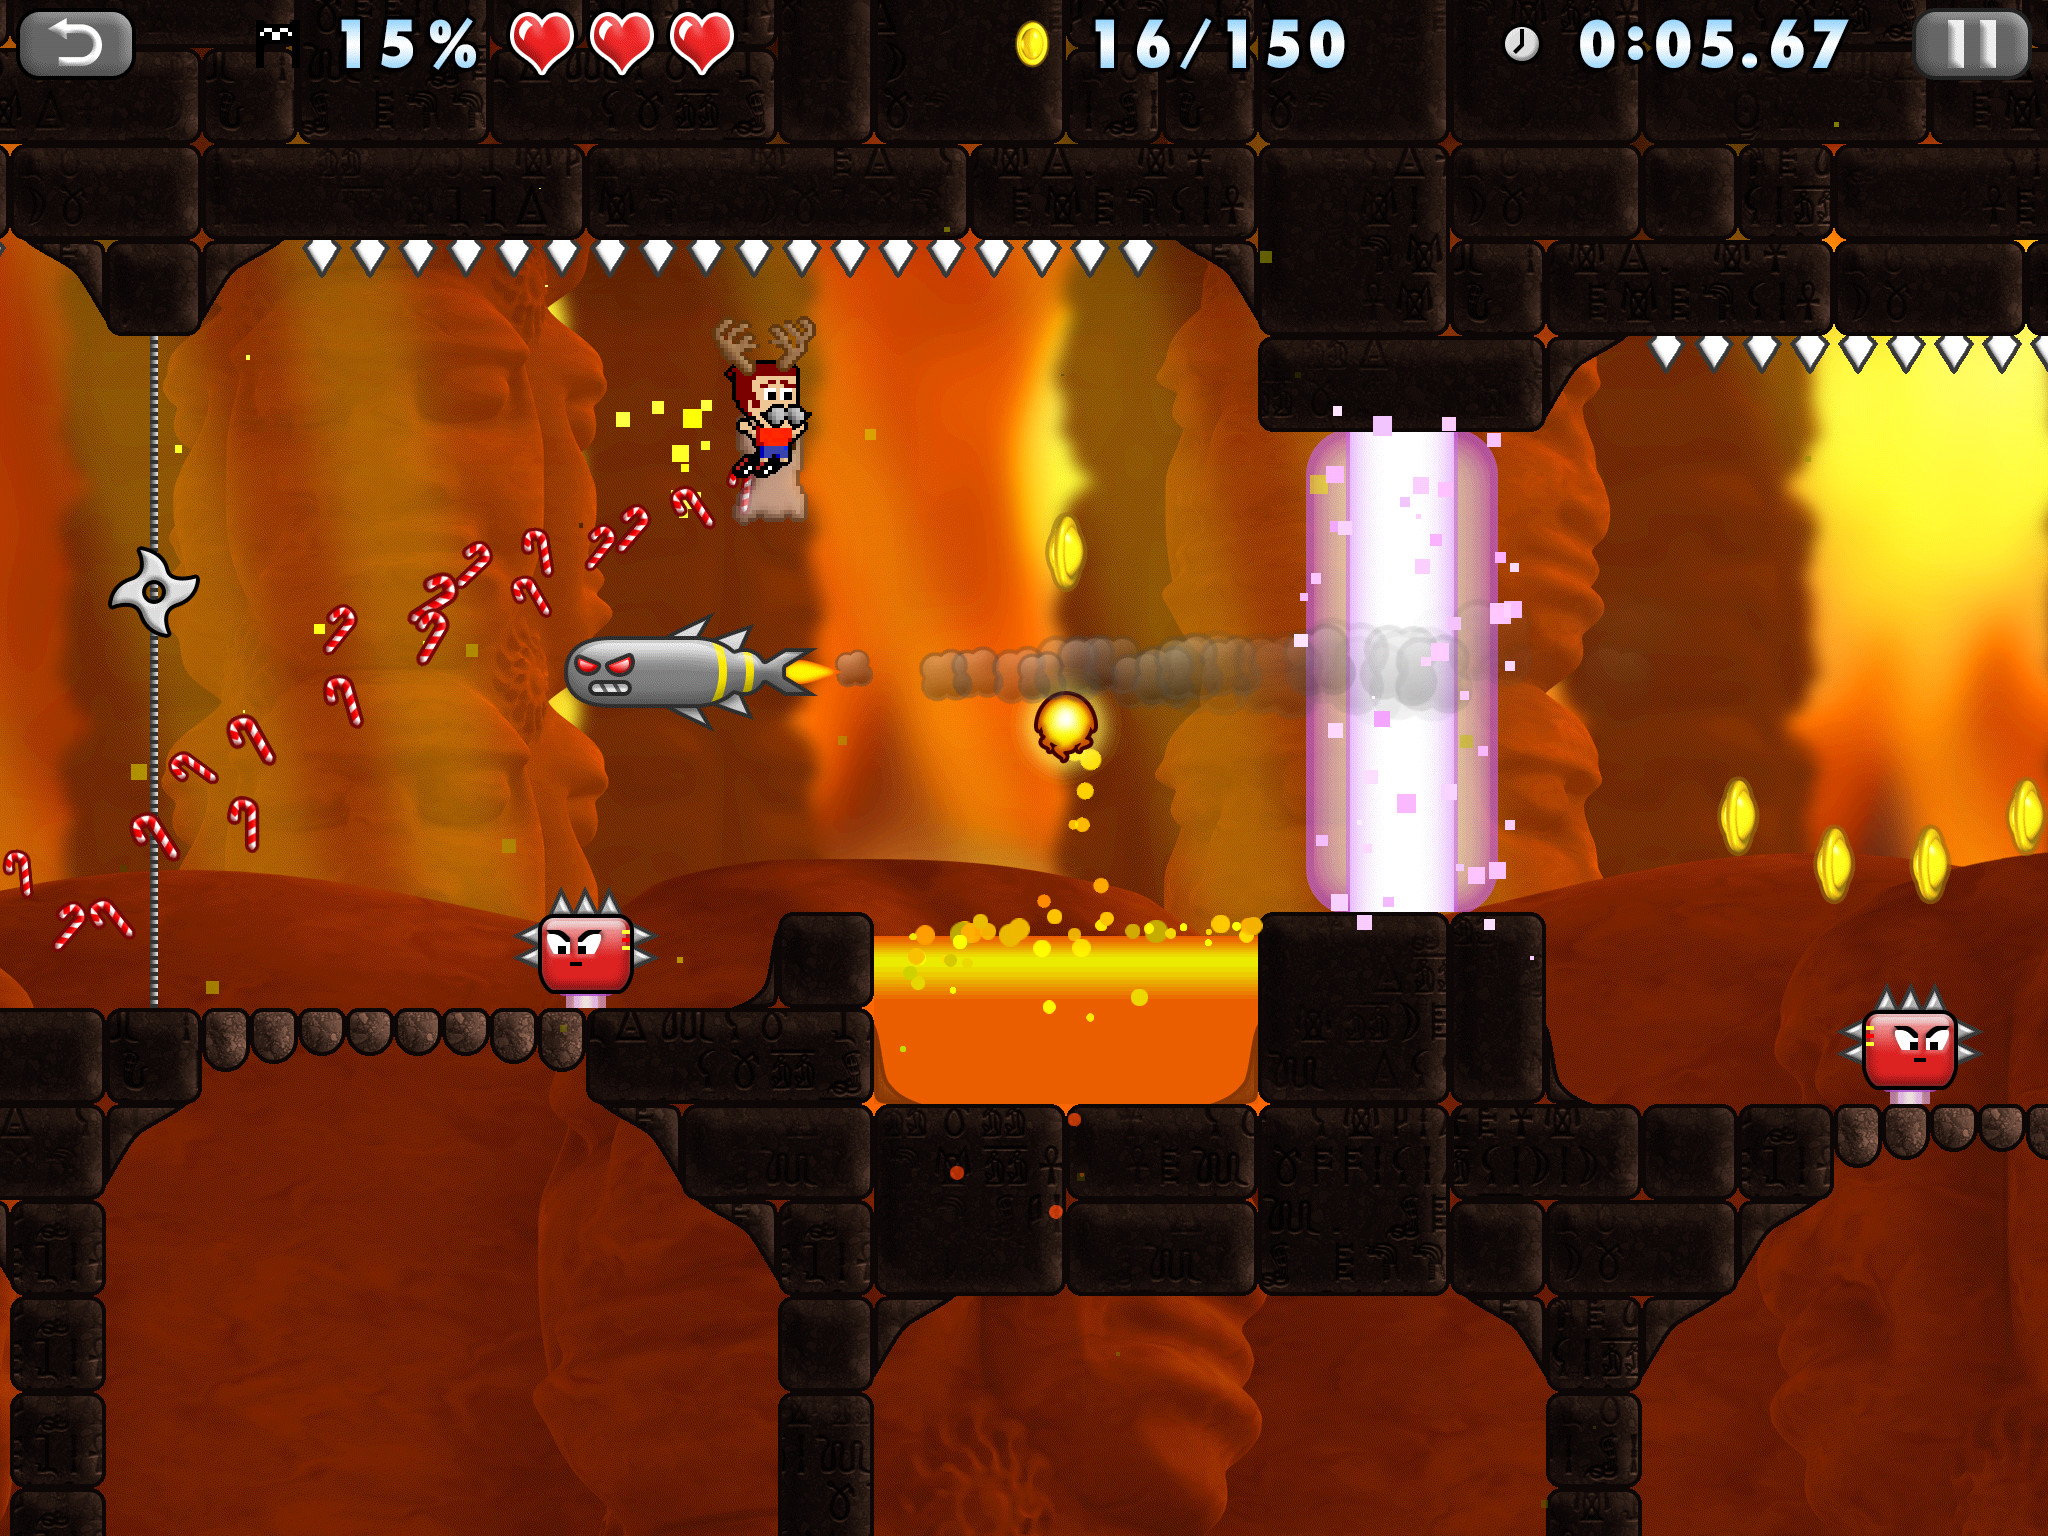 Silver Award-winning Mikey Boots drifts past a spike, lands on Android